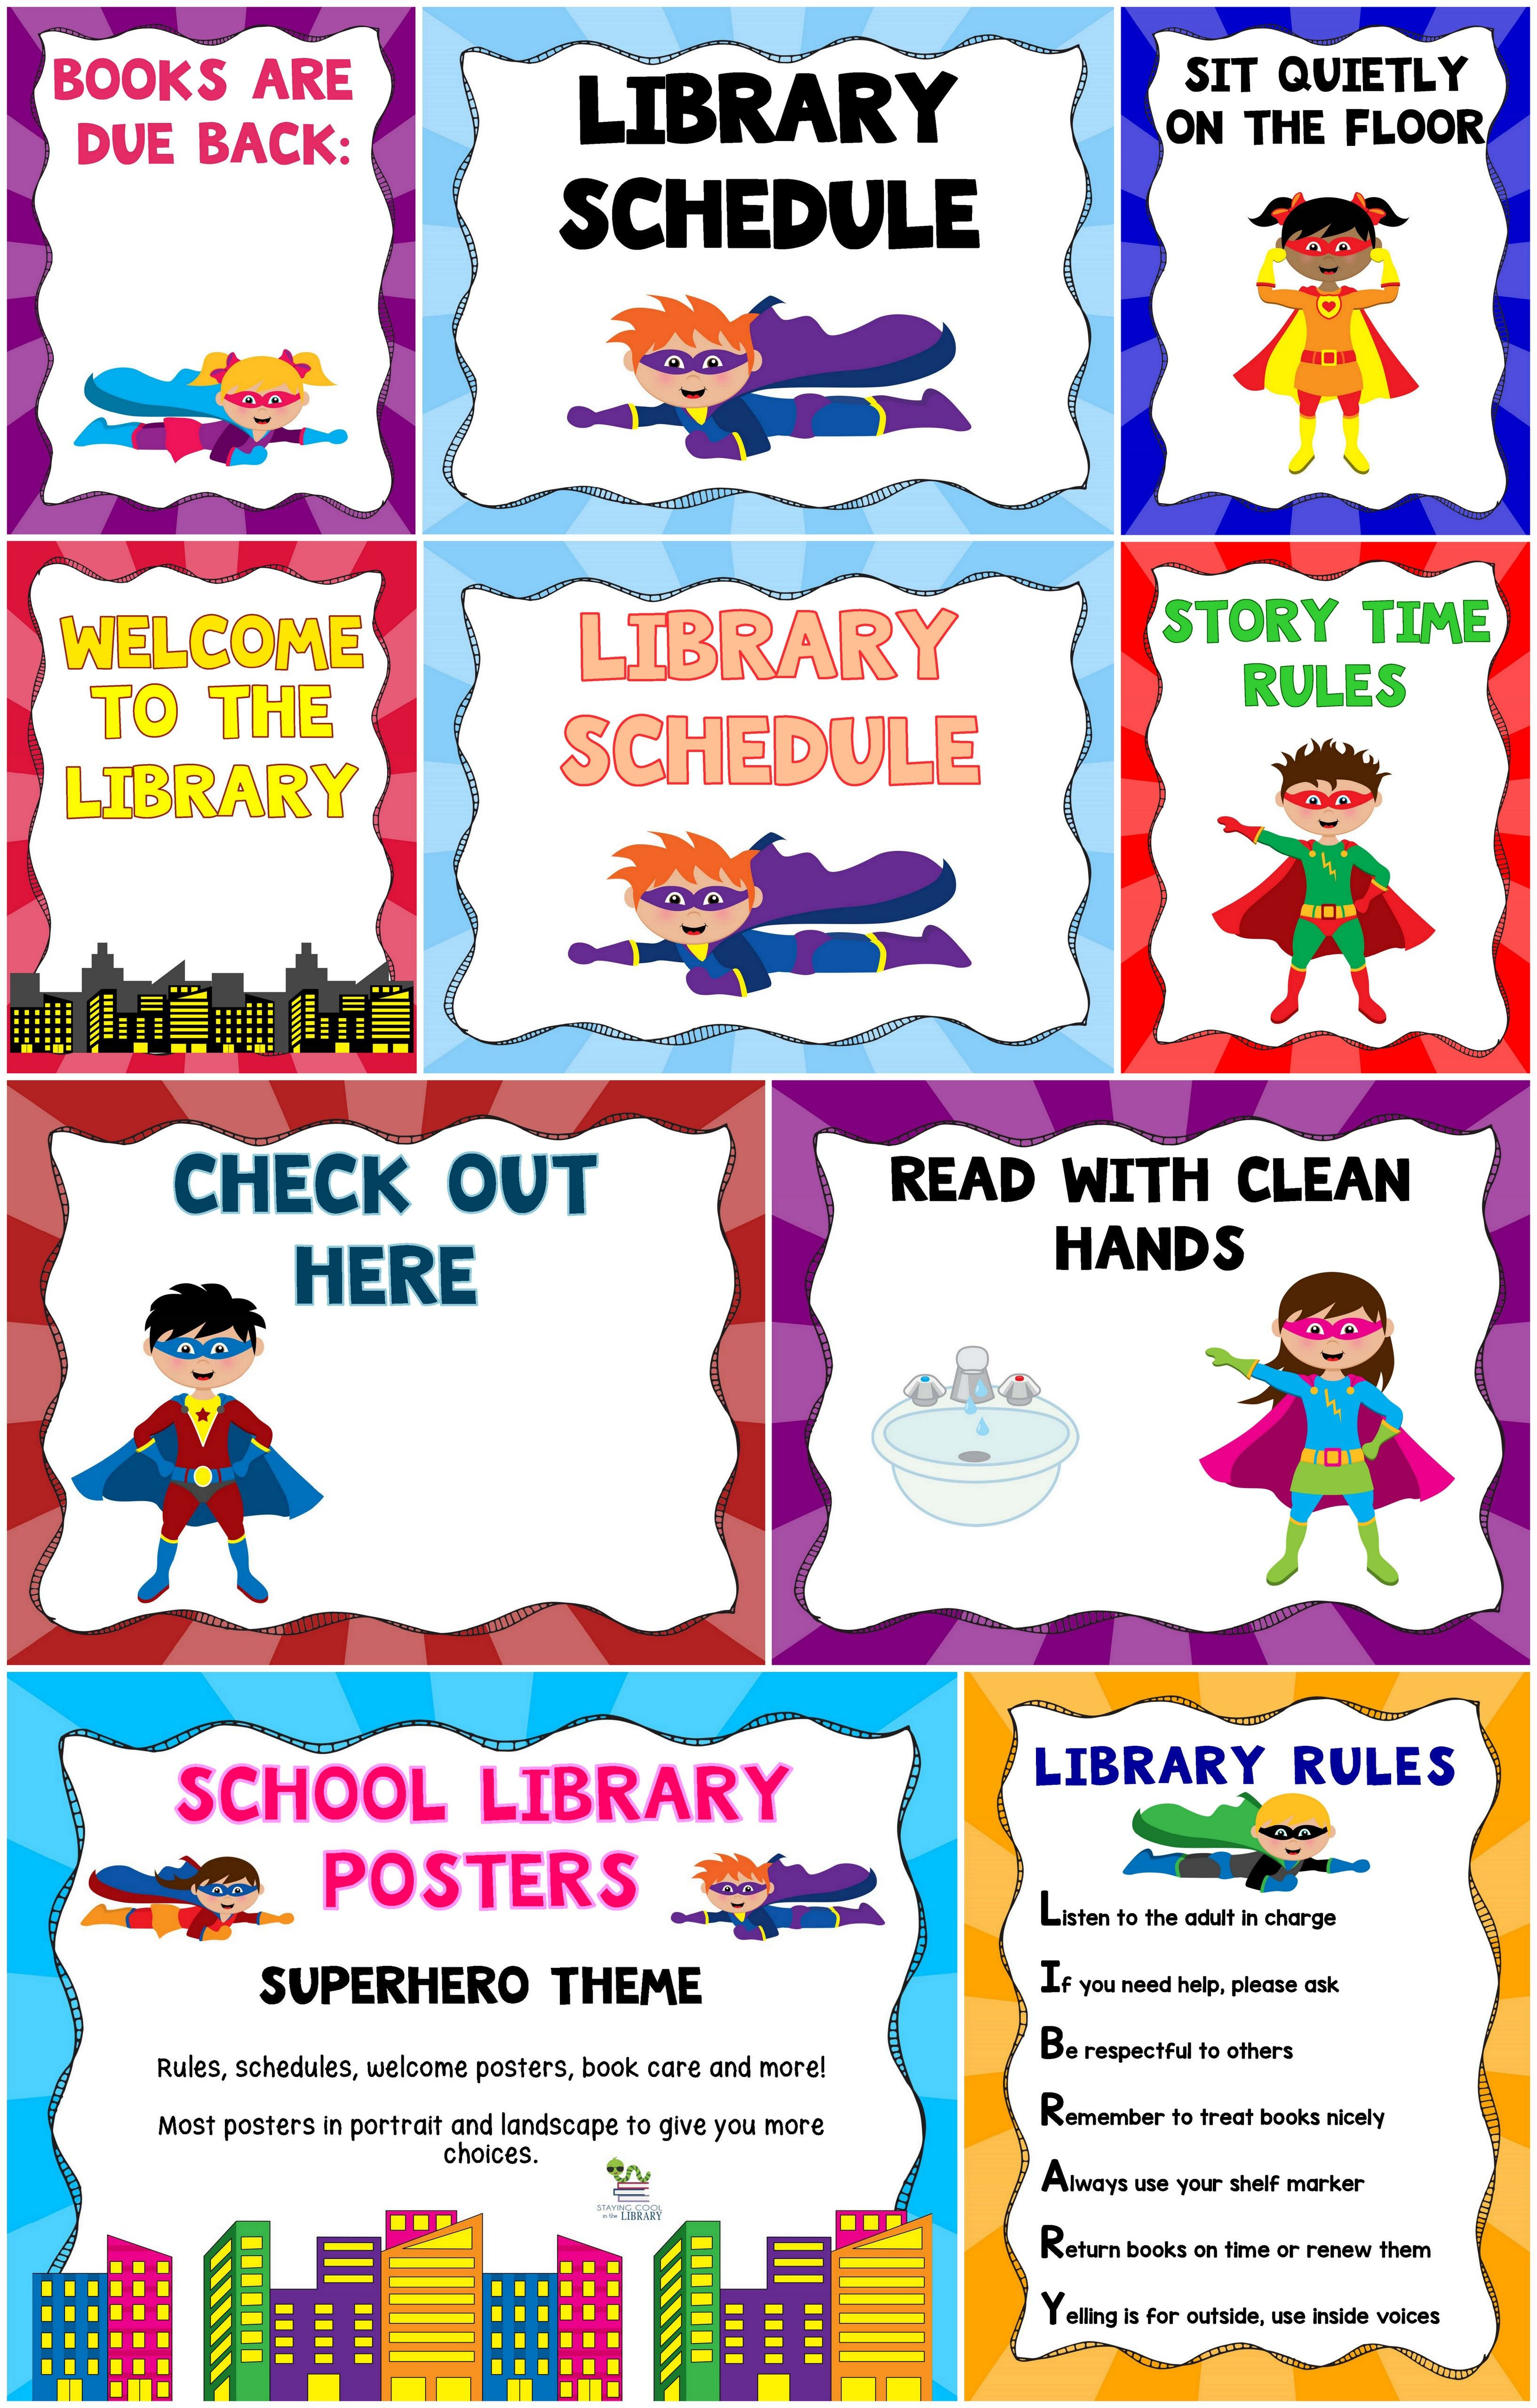 Decorate Your Library With Superheroes There Are Over 100 Pages Of Posters Posters Come In Portrait An Library Posters School Library Posters Superhero Theme